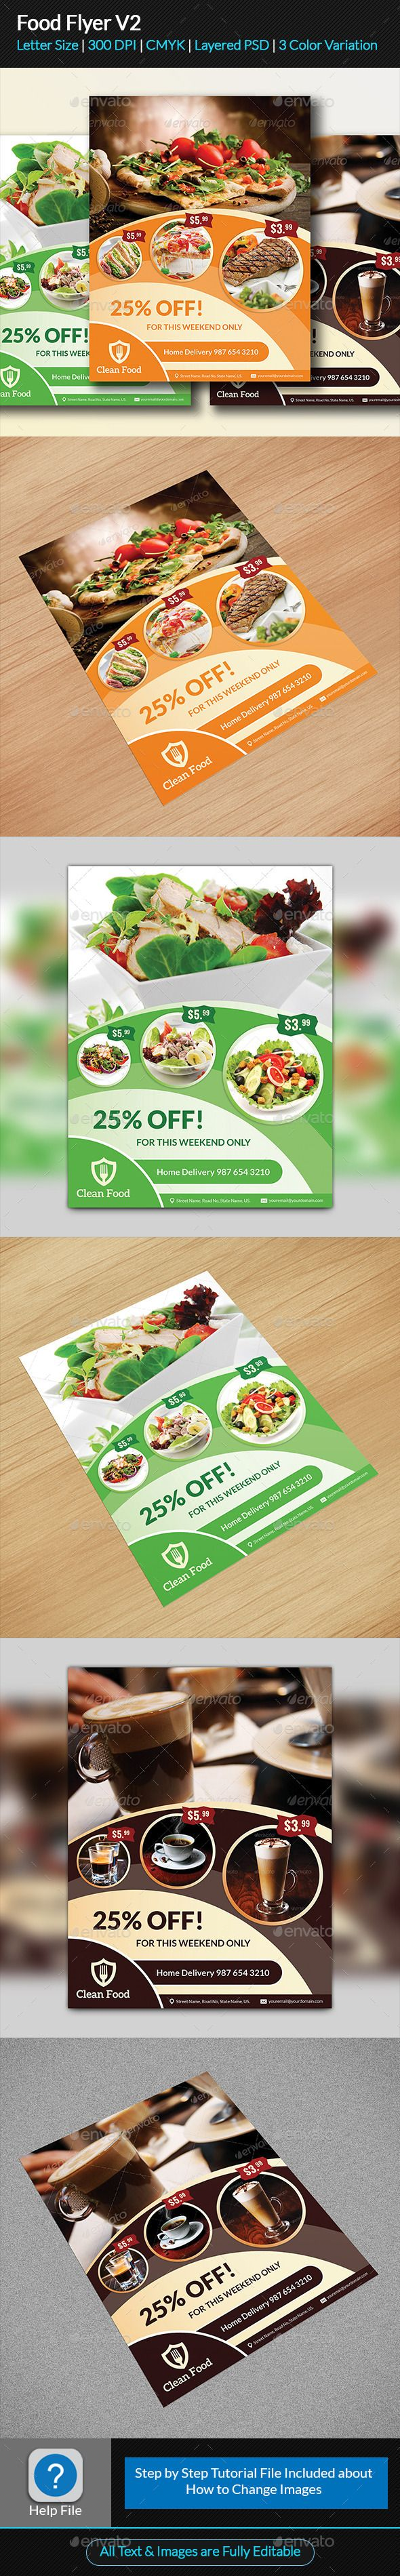 Food Flyer Template #design Download: http://graphicriver.net/item/food-flyer-v2/11811938?ref=ksioks